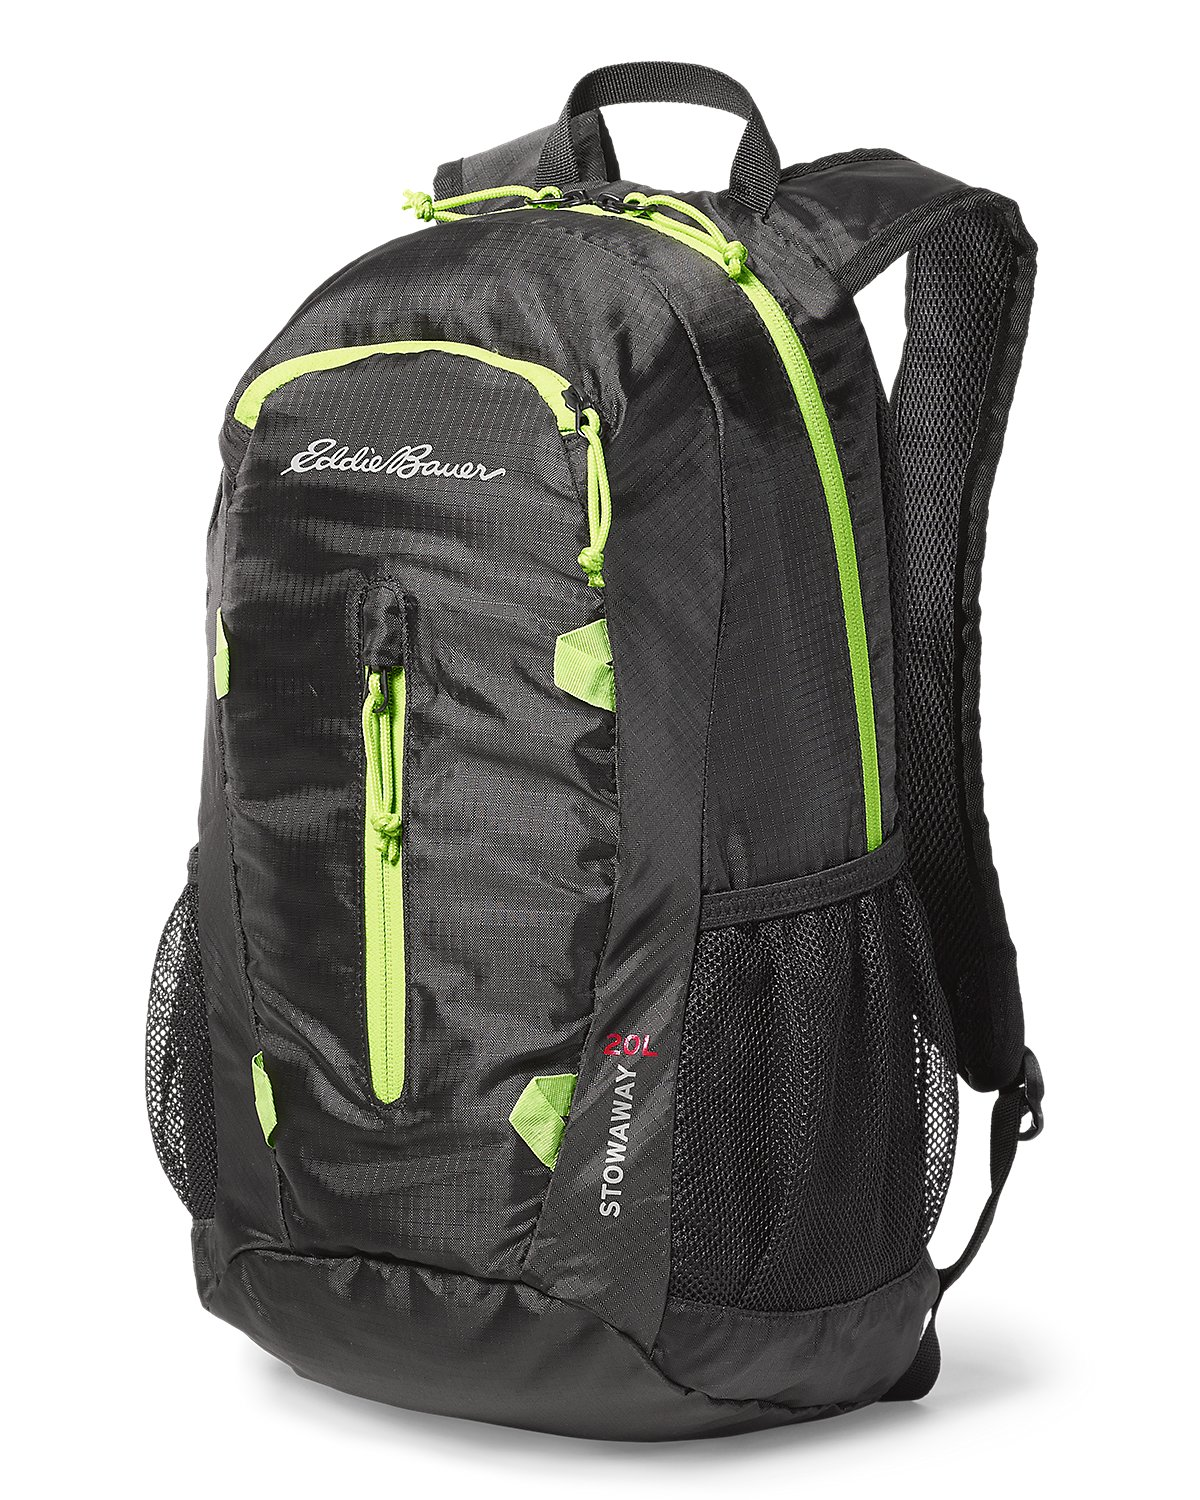 Eddie Bauer Stowaway Bag from $12.50